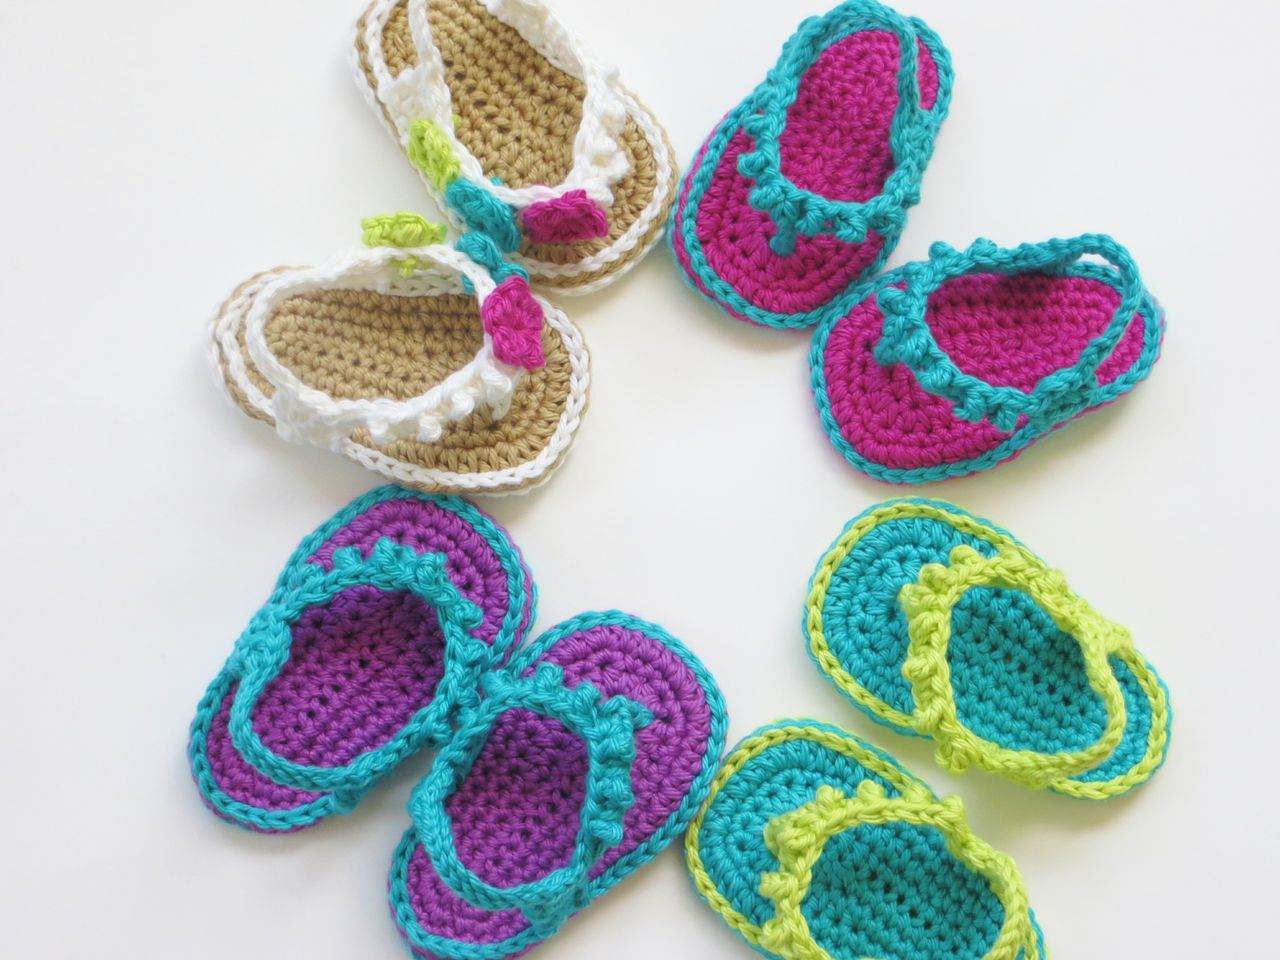 Flip Flops for Baby Girls Crochet Pattern - Knitting ...